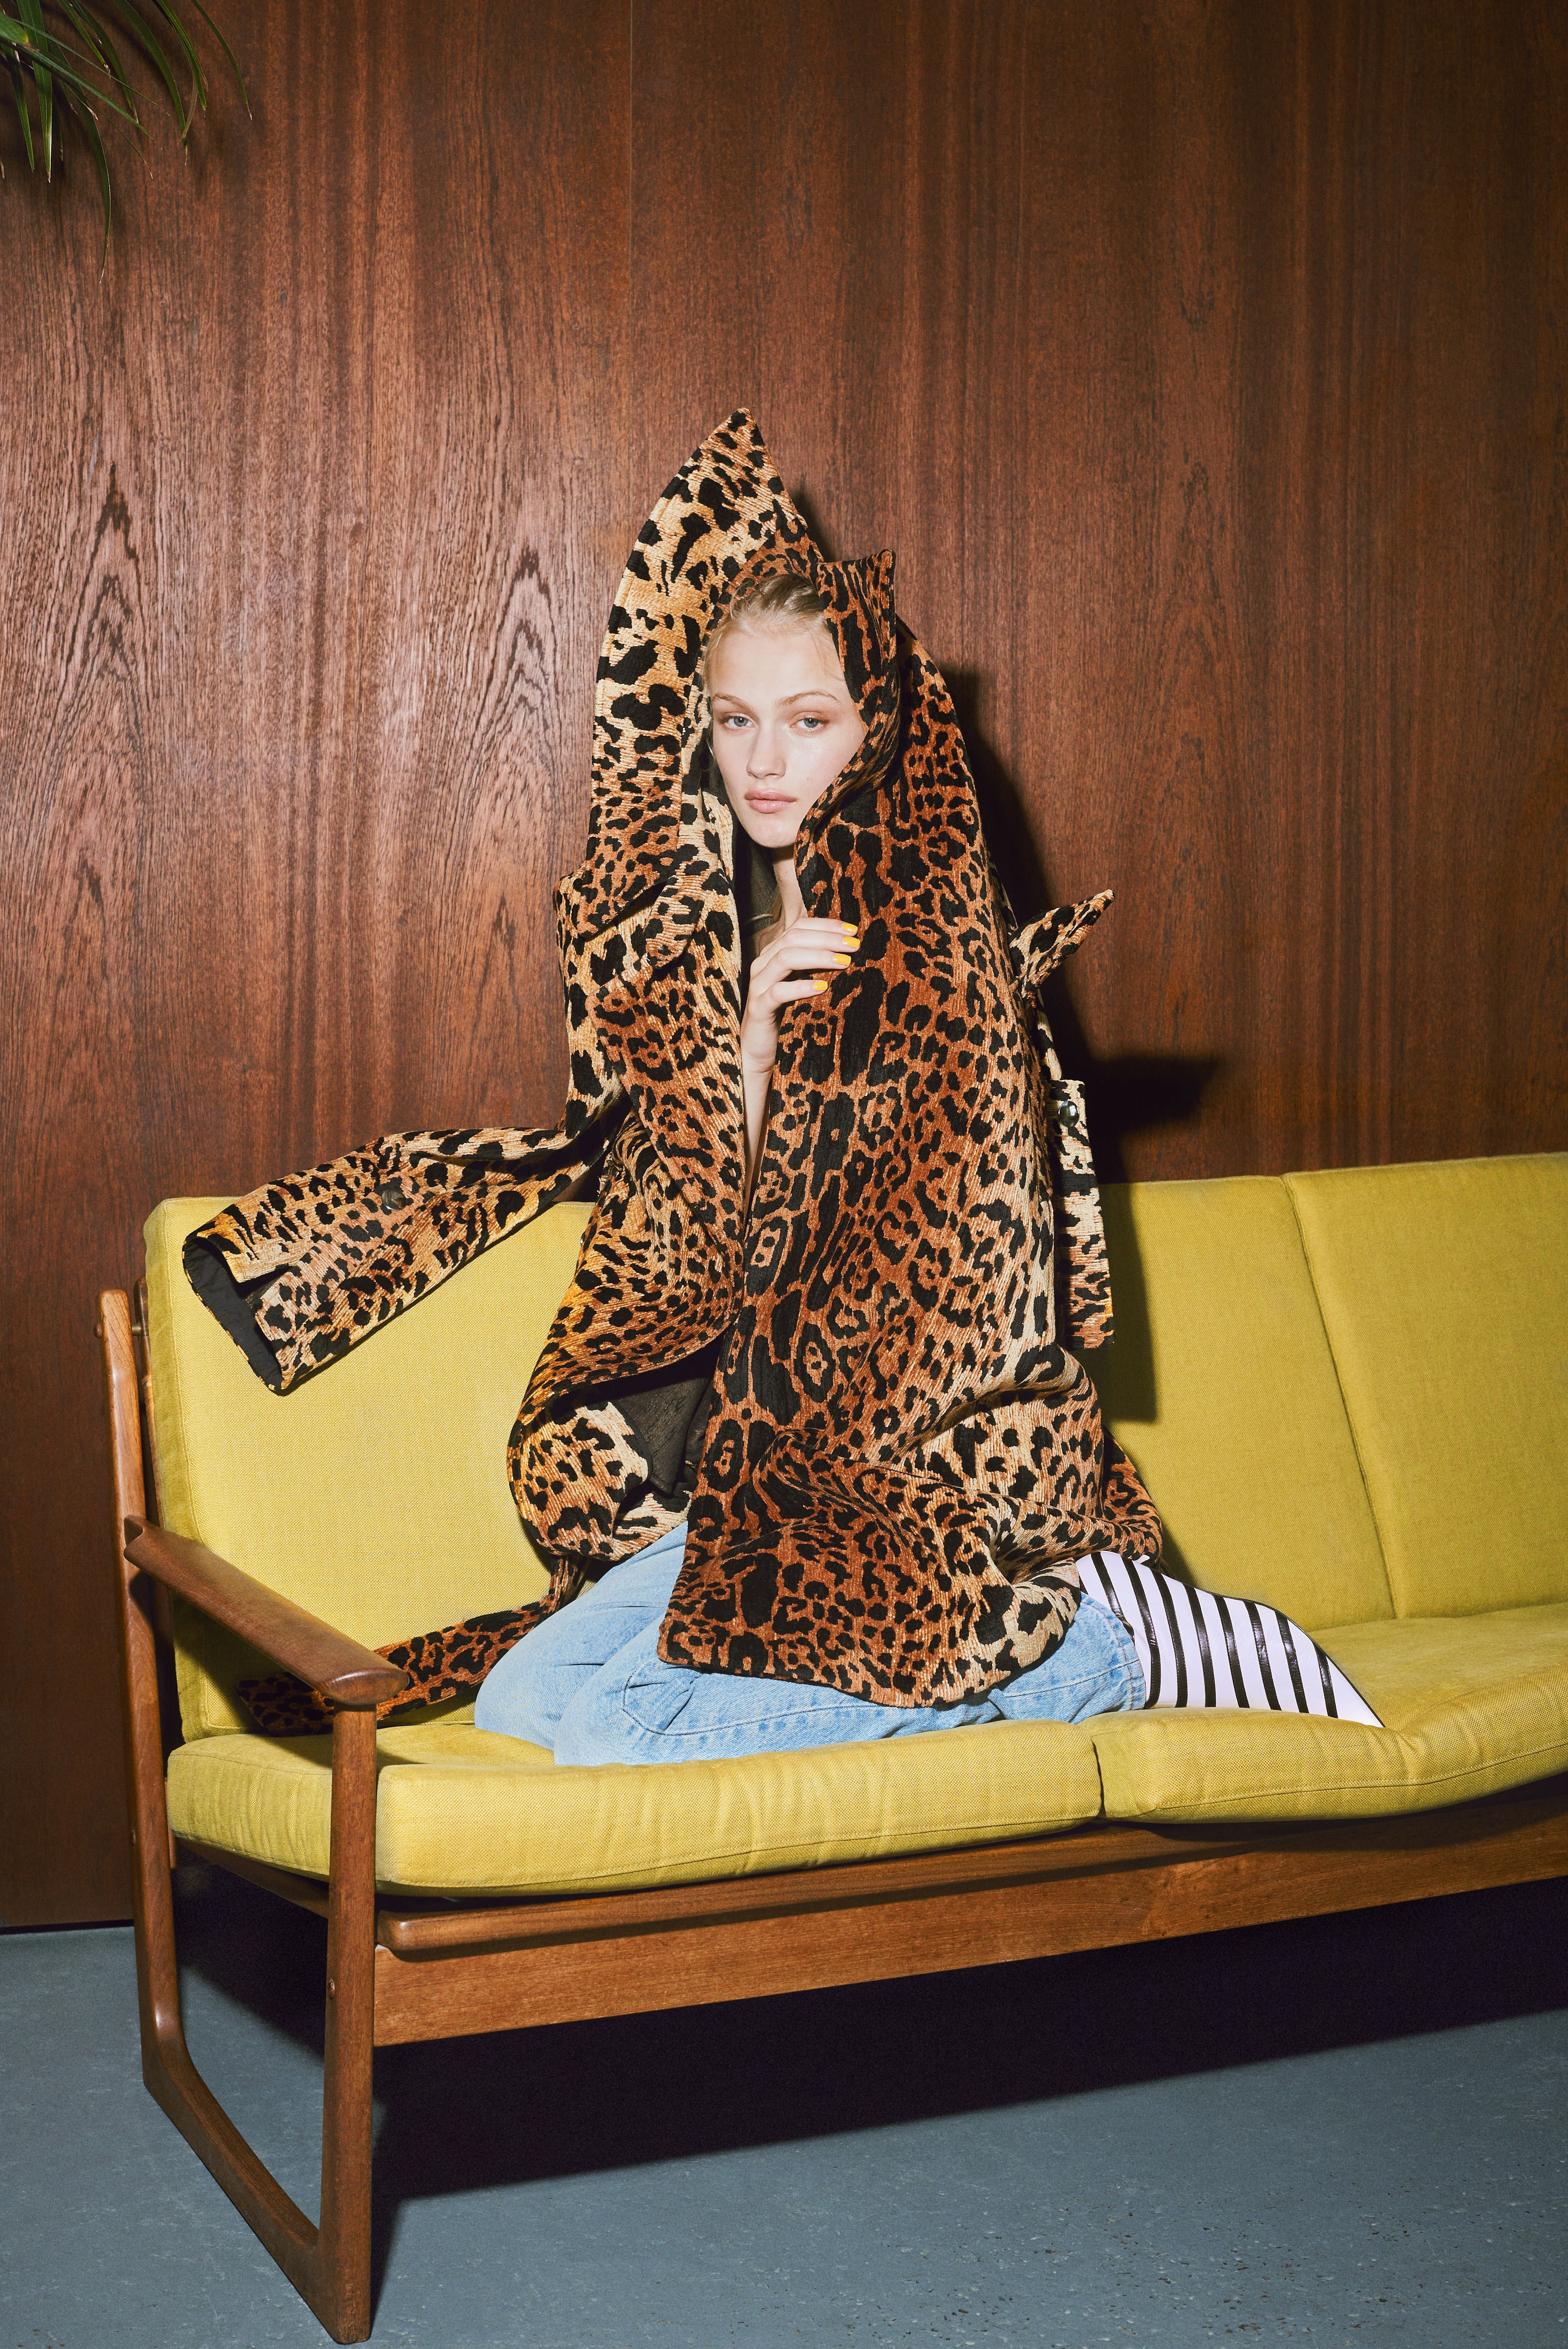 3c75350eaa91 Animal Prints: Why The Perennial Trend Will Be Forever Chic